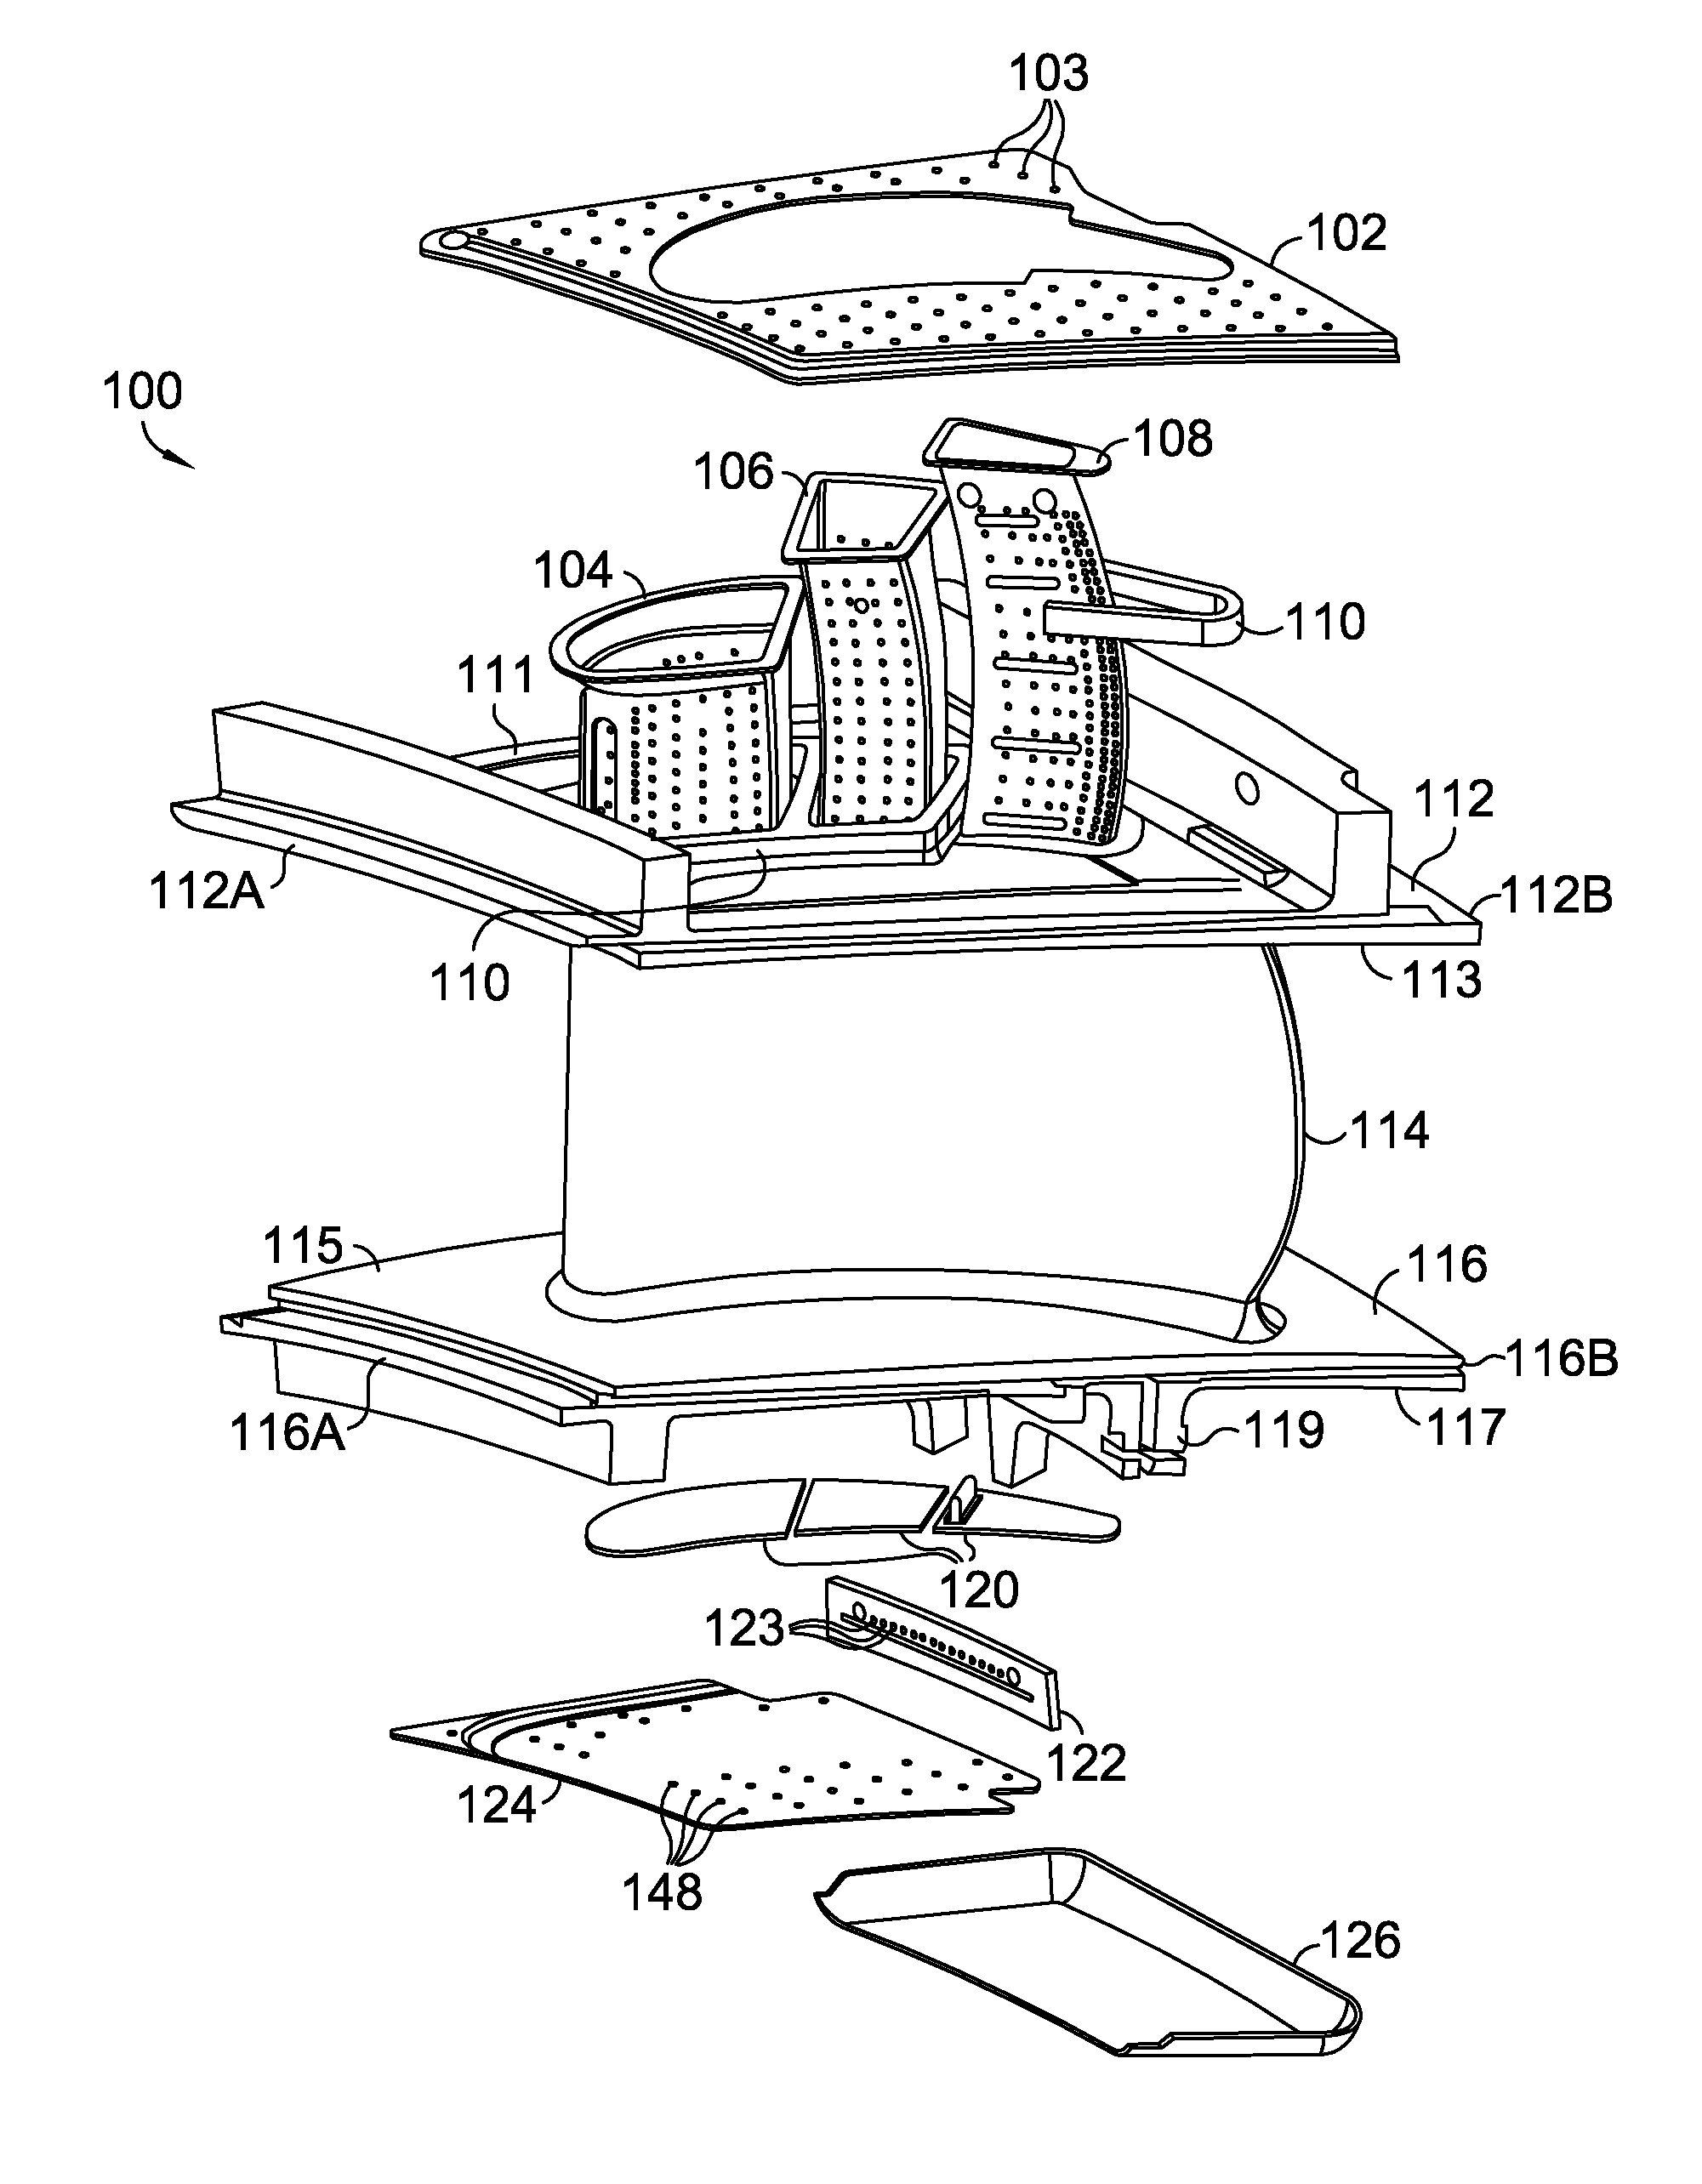 patent us8142137 - cooled gas turbine vane assembly